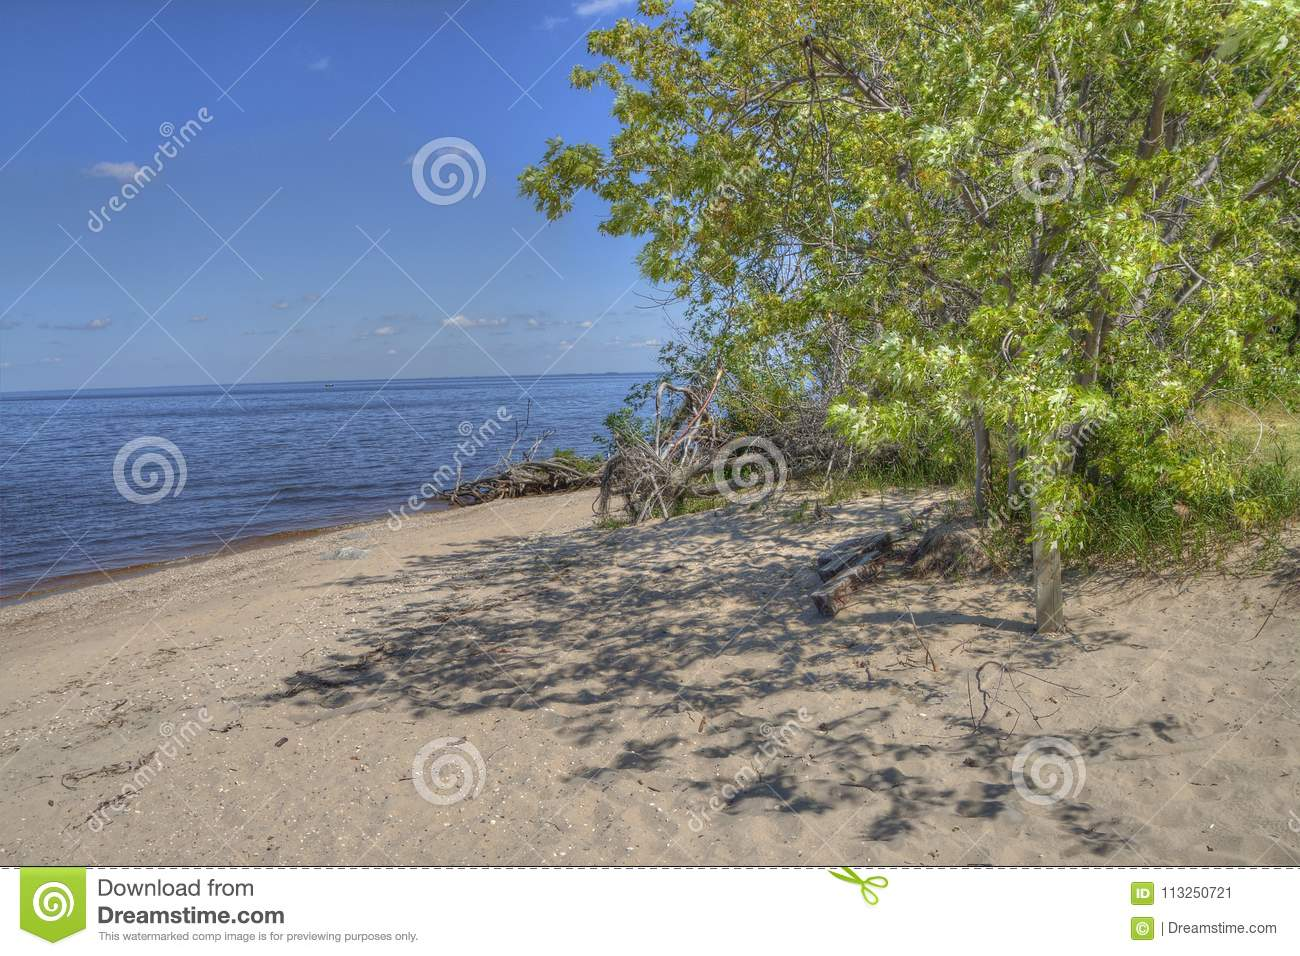 Zippel Bay State Park On Lake Of The Woods, Minnesota Stock